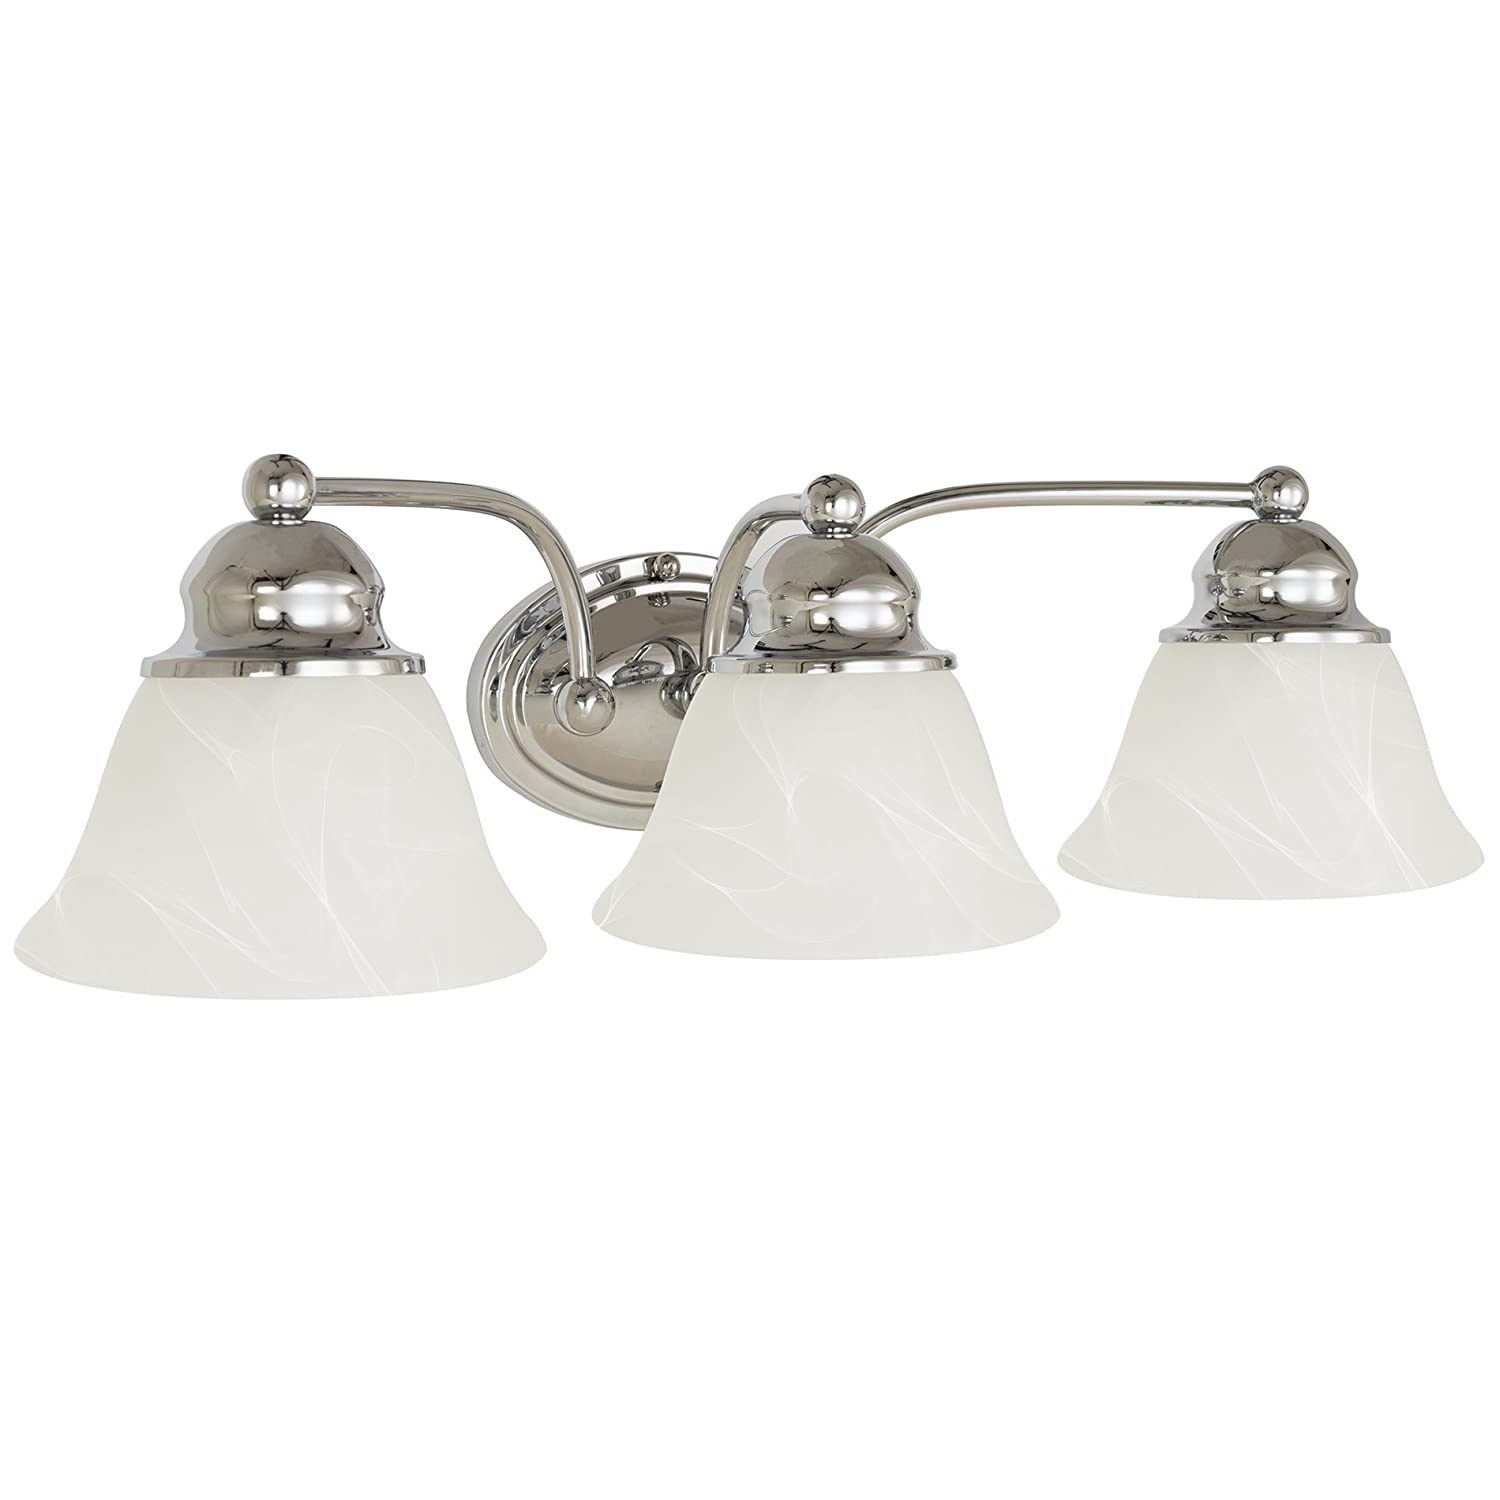 Kira Home Carlisle 21 3-Light Vanity Bathroom Light with Alabaster Glass, Polished Chrome